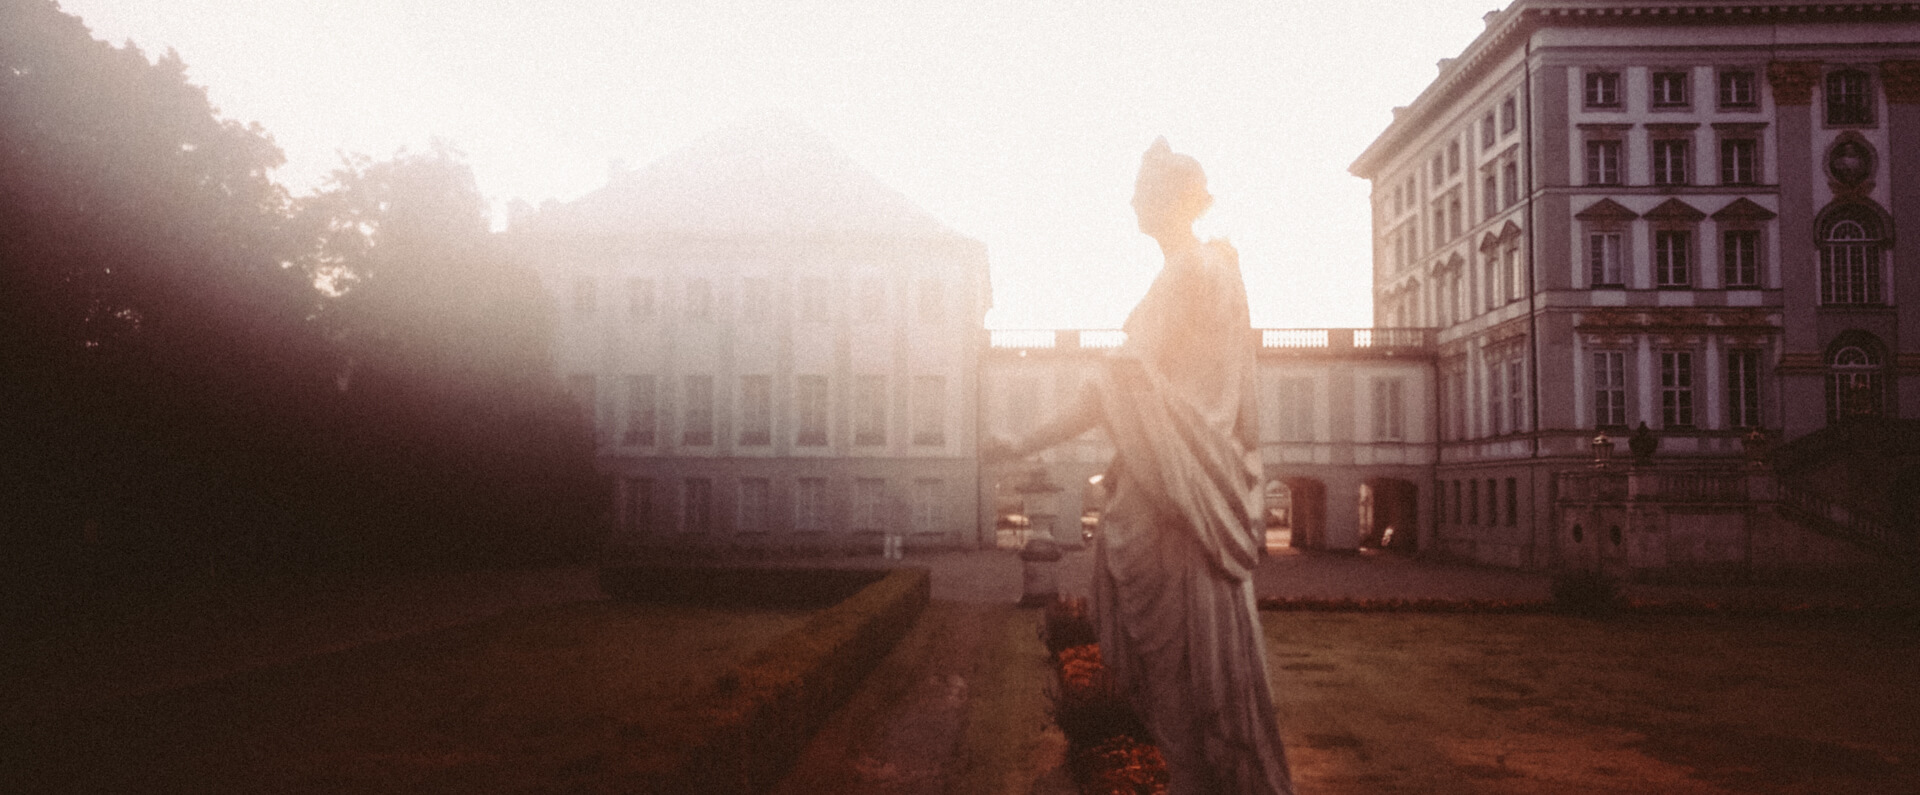 170917 Nymphenburg 21 10